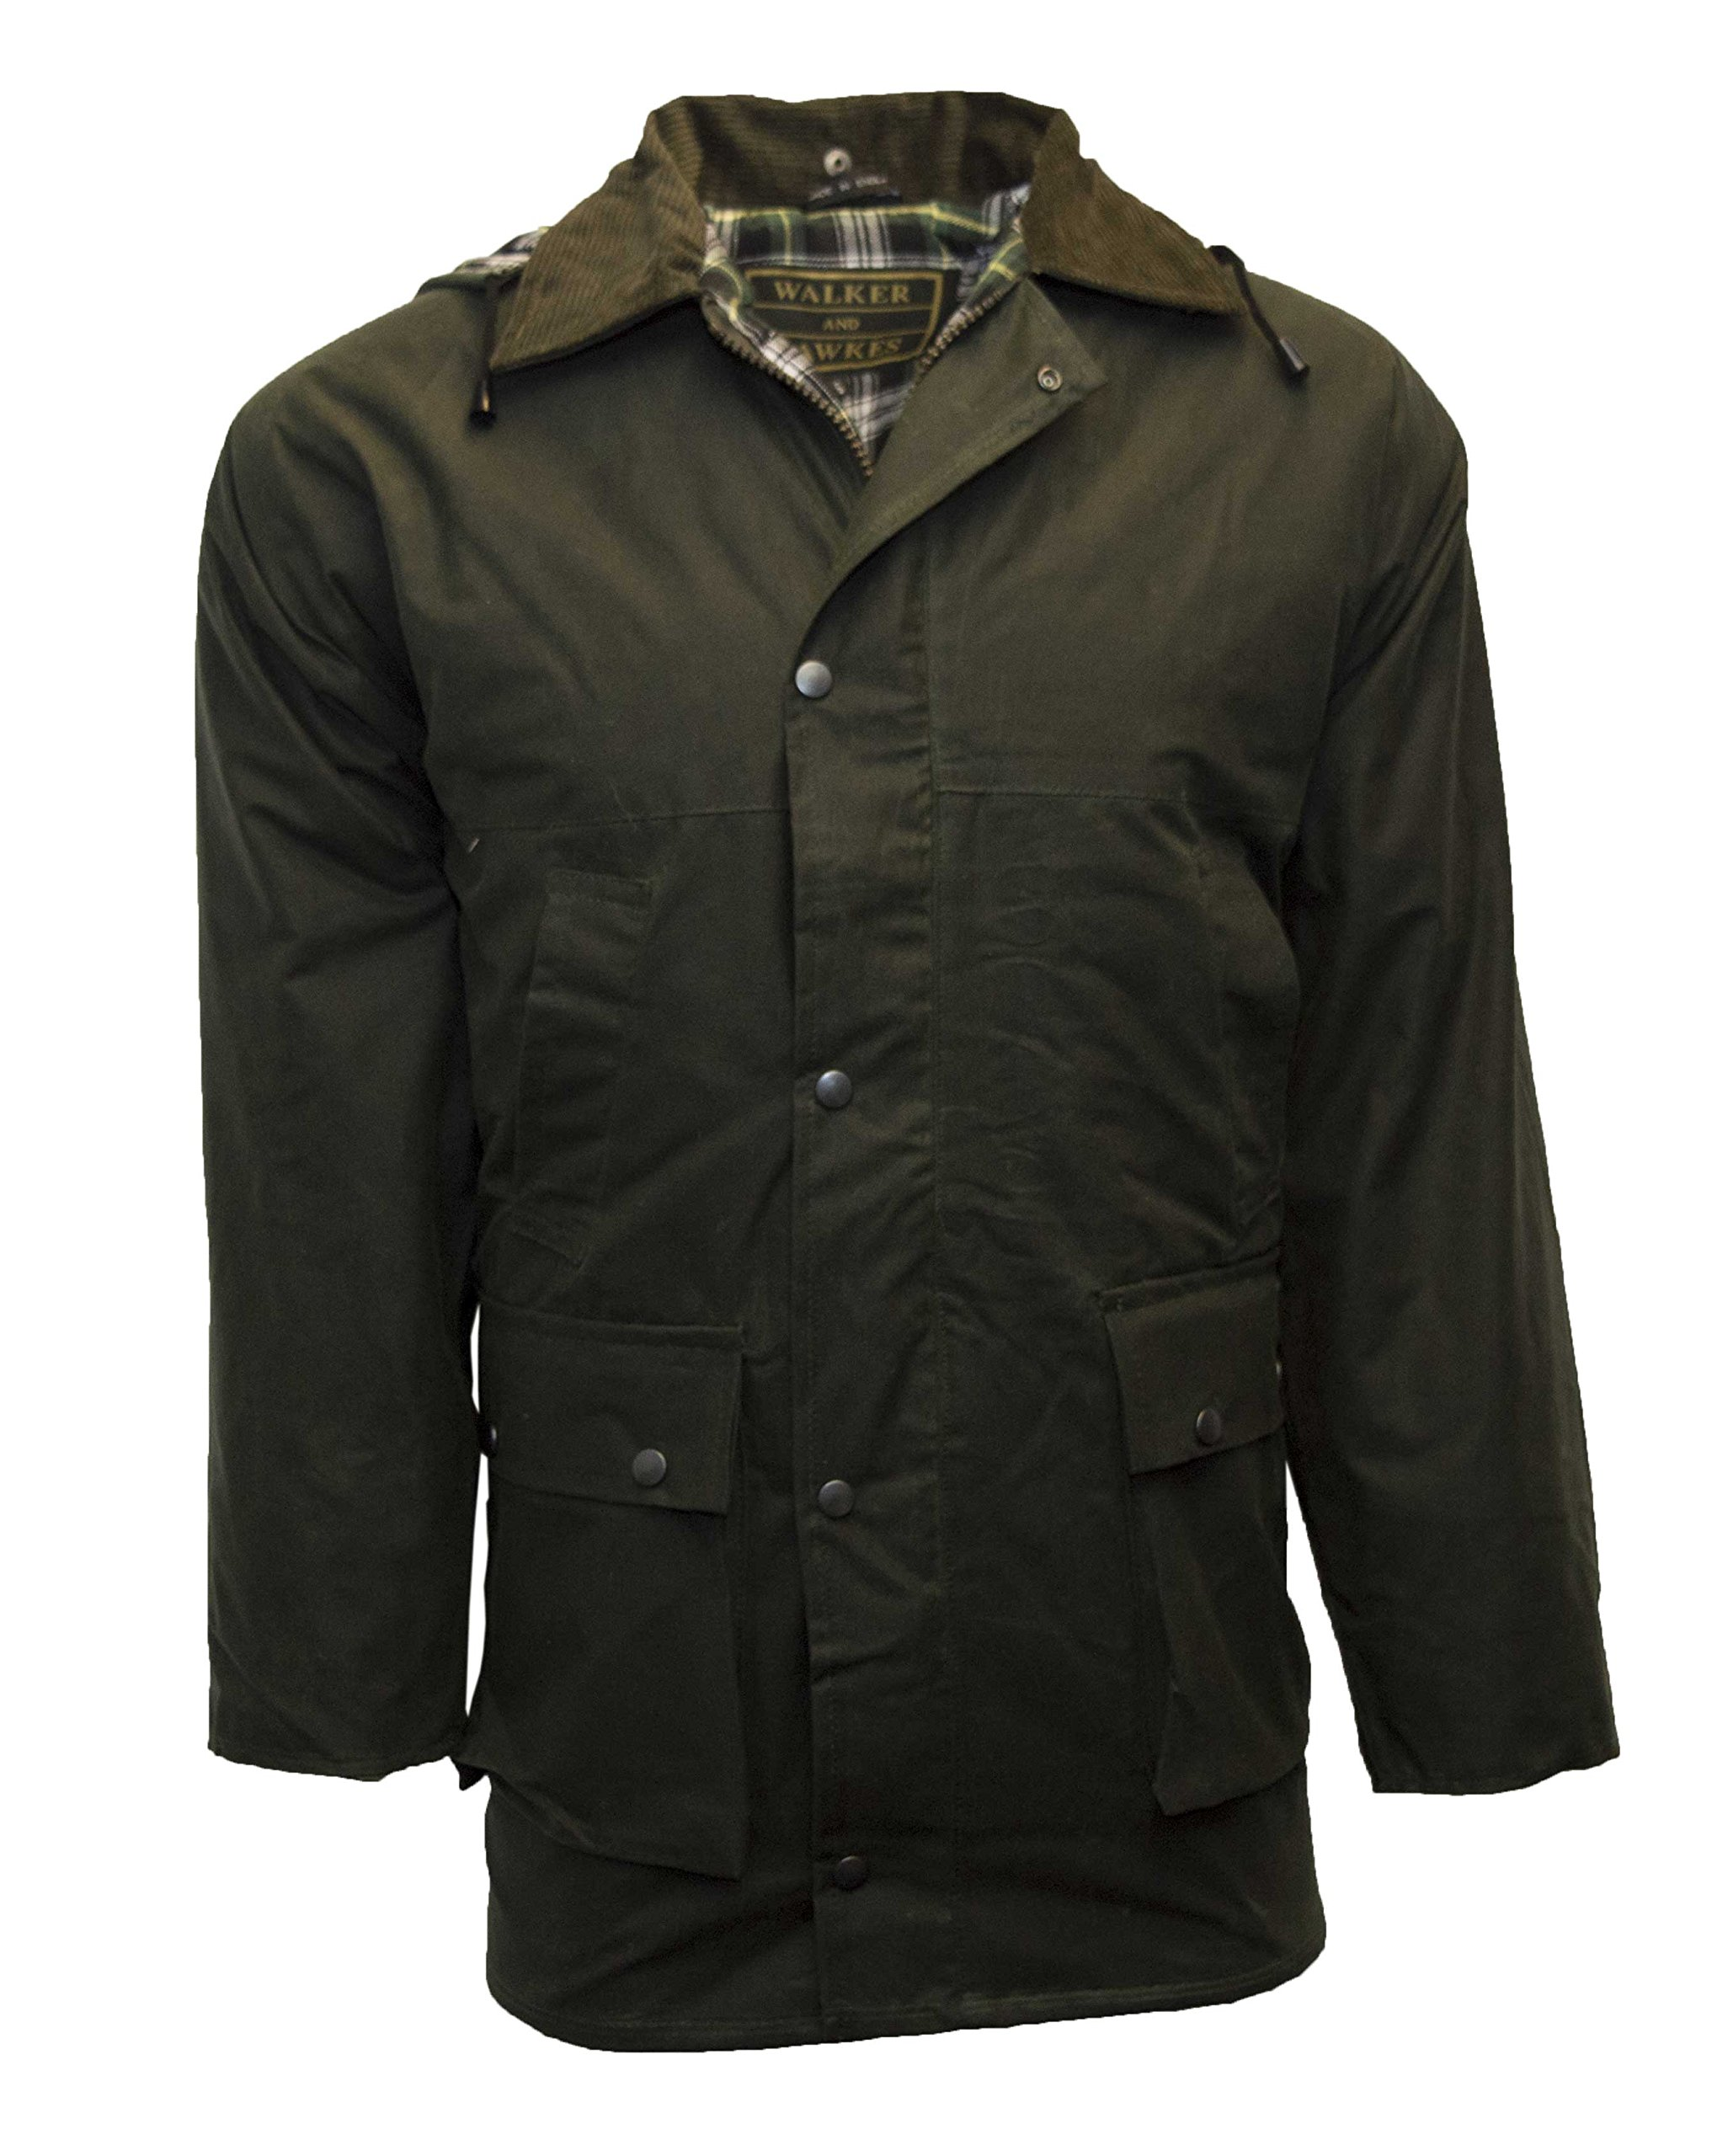 Walker & Hawkes - Mens Unpadded Wax Jacket Countrywear Hunting Waxed Coat - Olive - XXX-Large by Walker and Hawkes (Image #2)